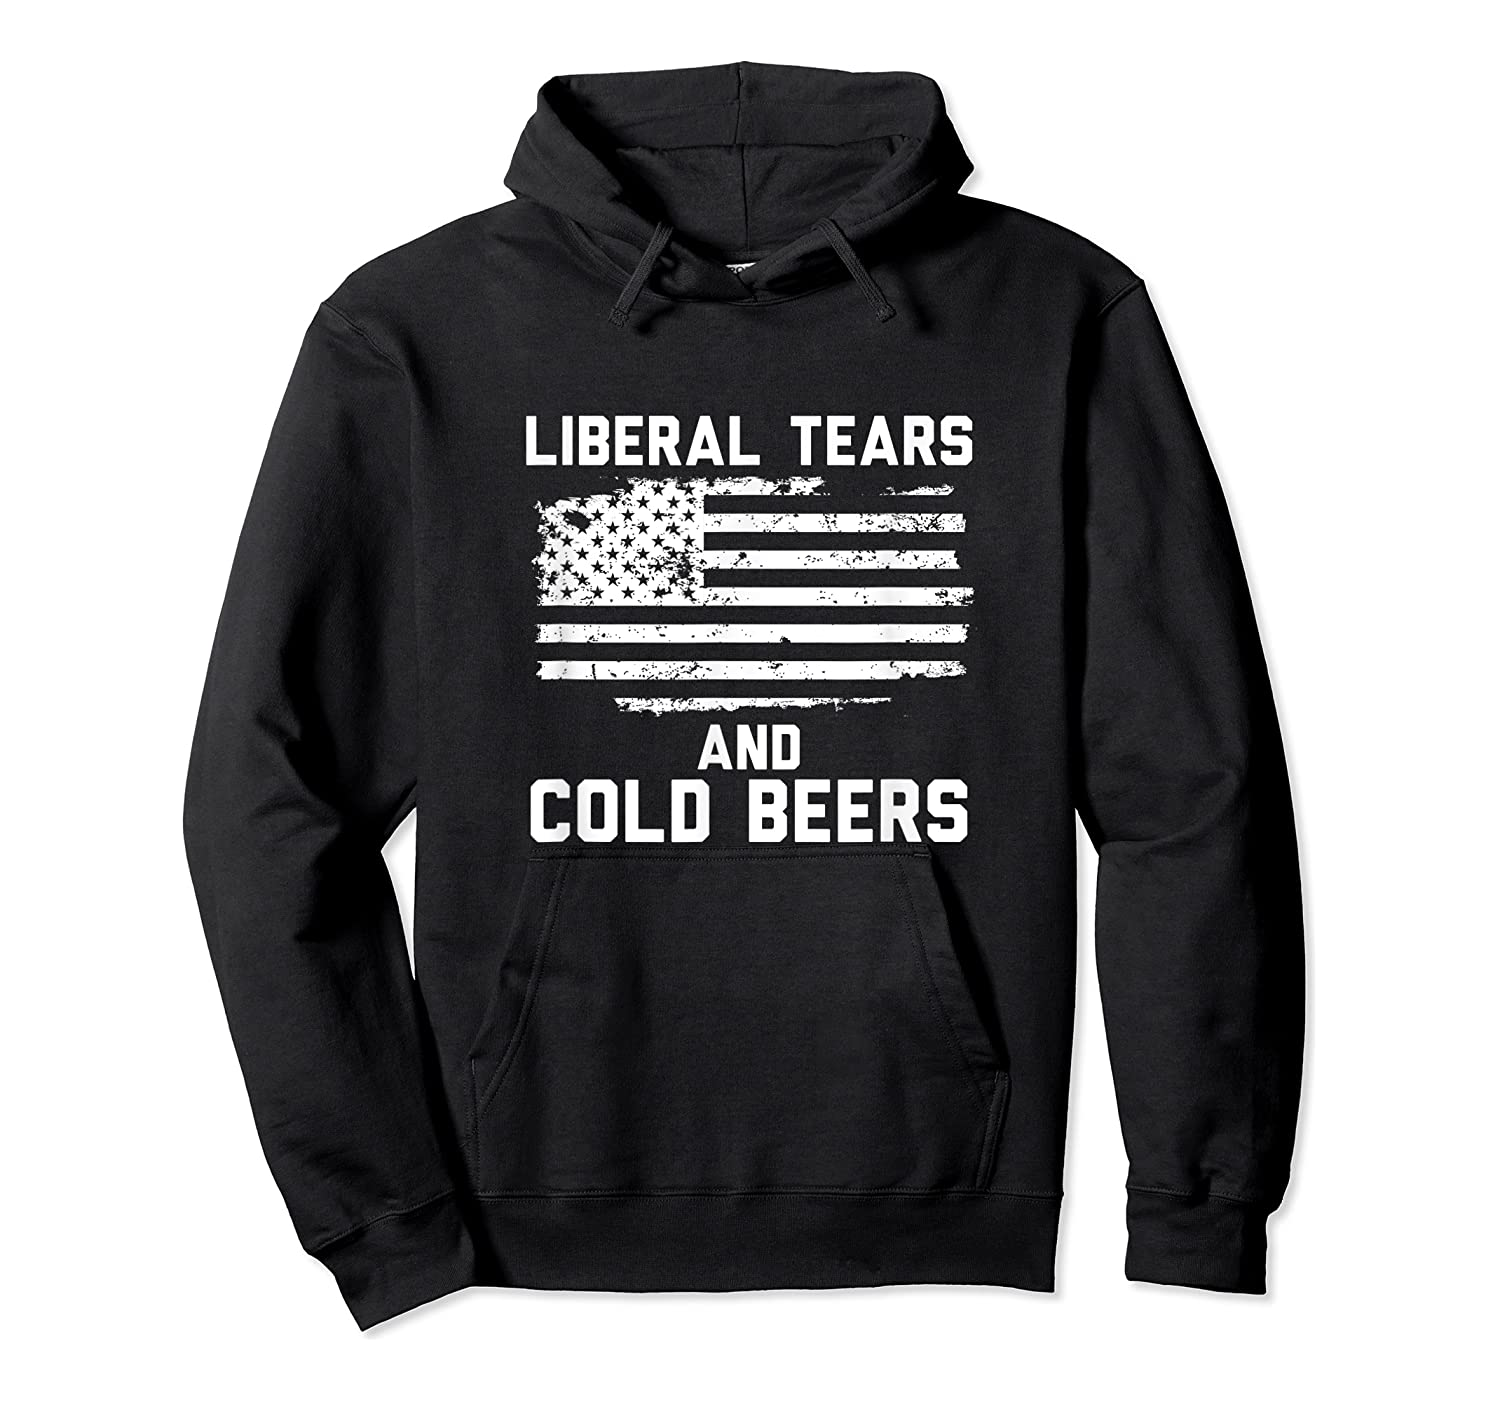 Funny Liberal Tears And Cold Beers T-shirt Unisex Pullover Hoodie